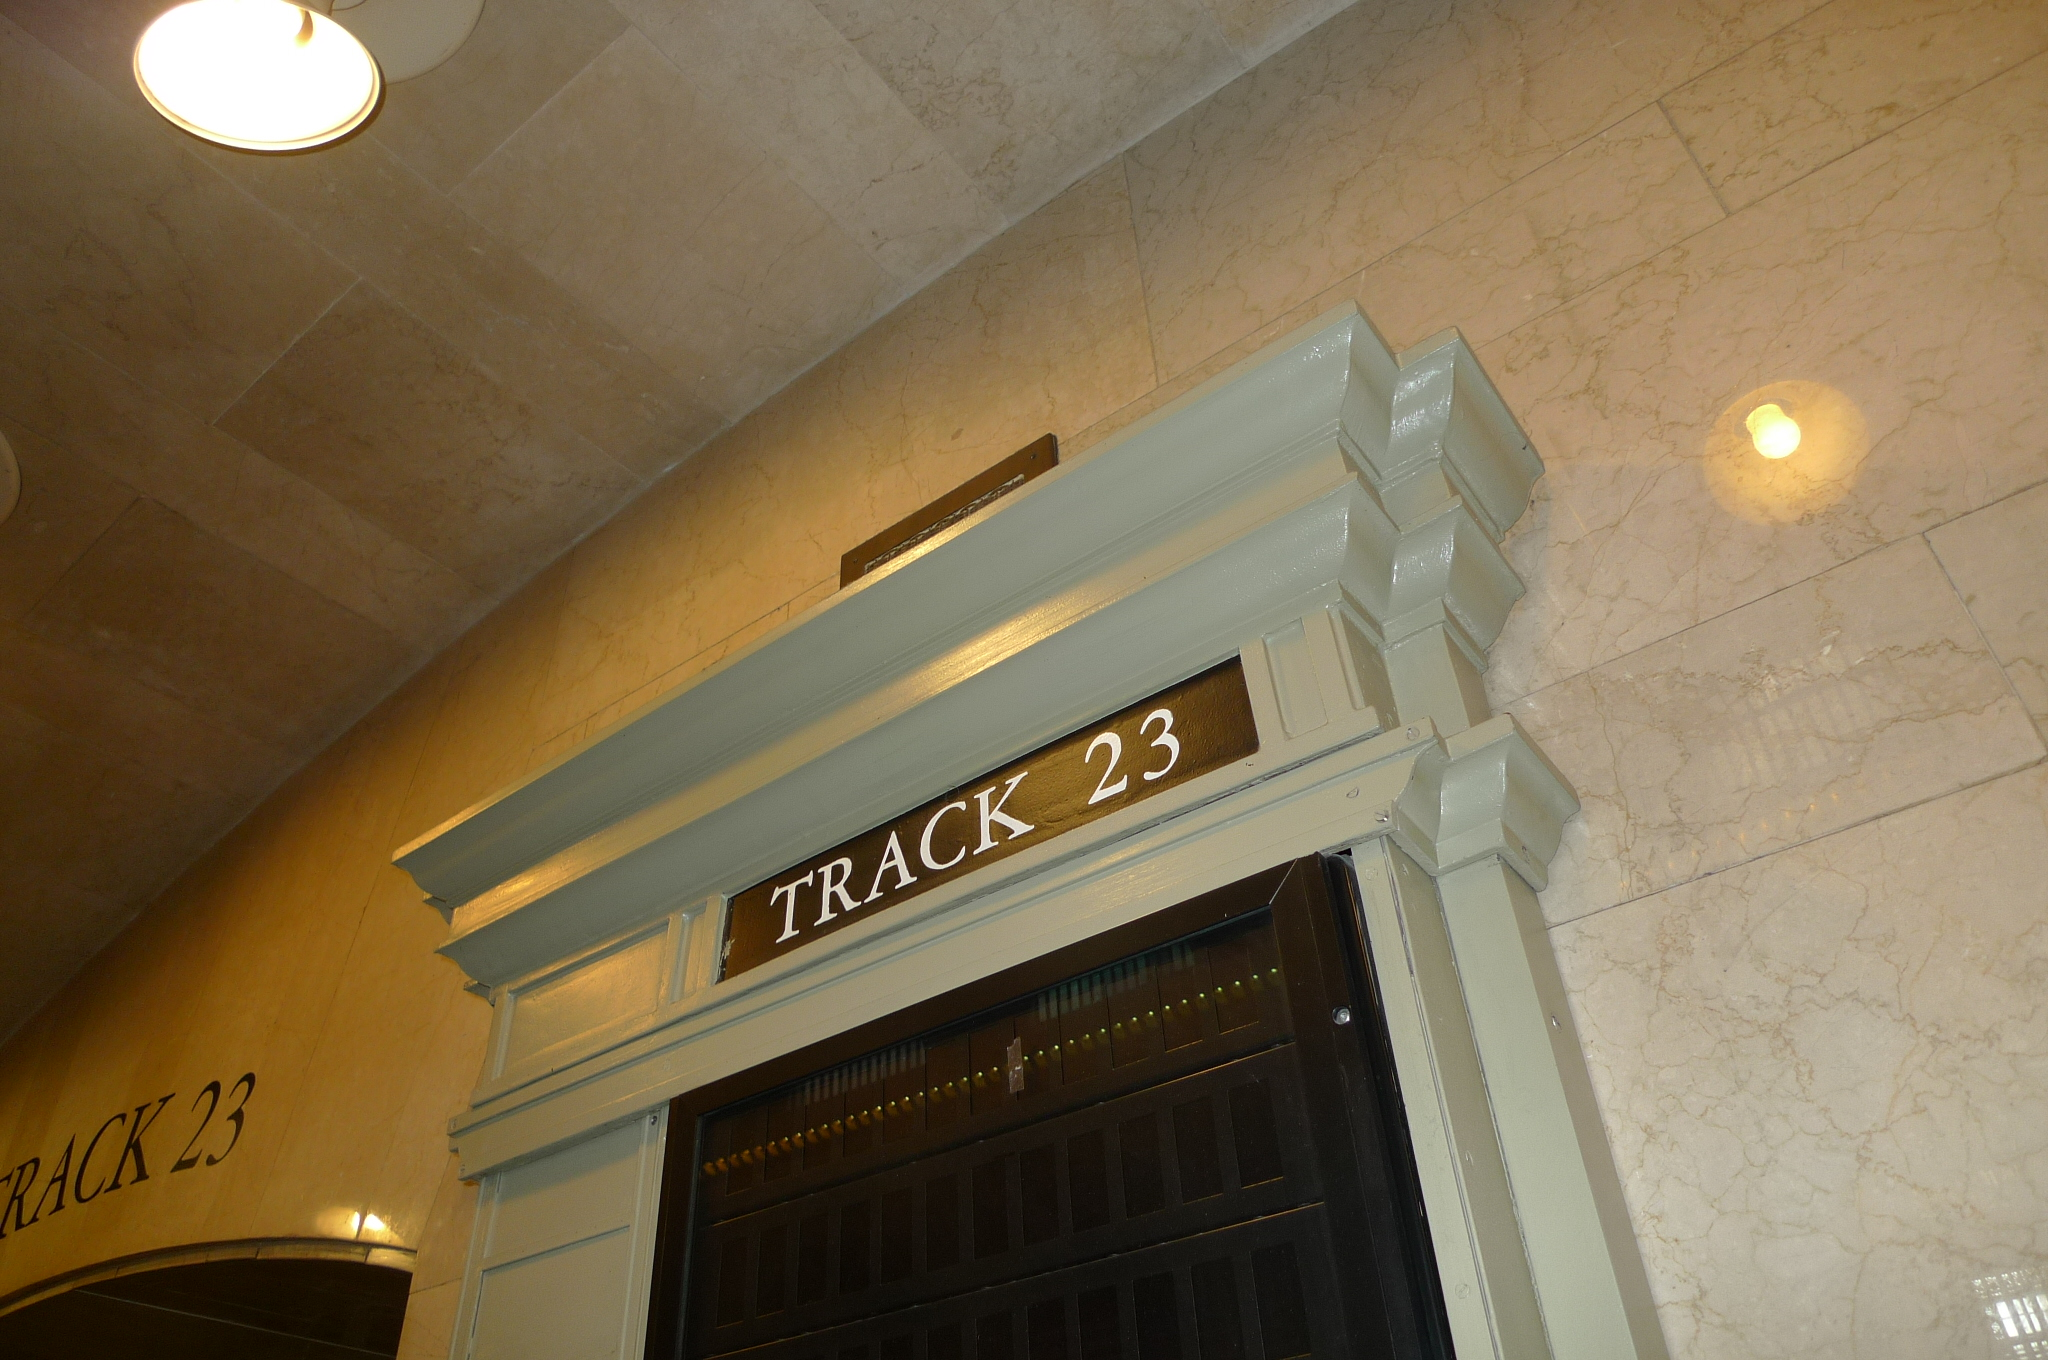 cast iron cornices throughout Grand Central Stations